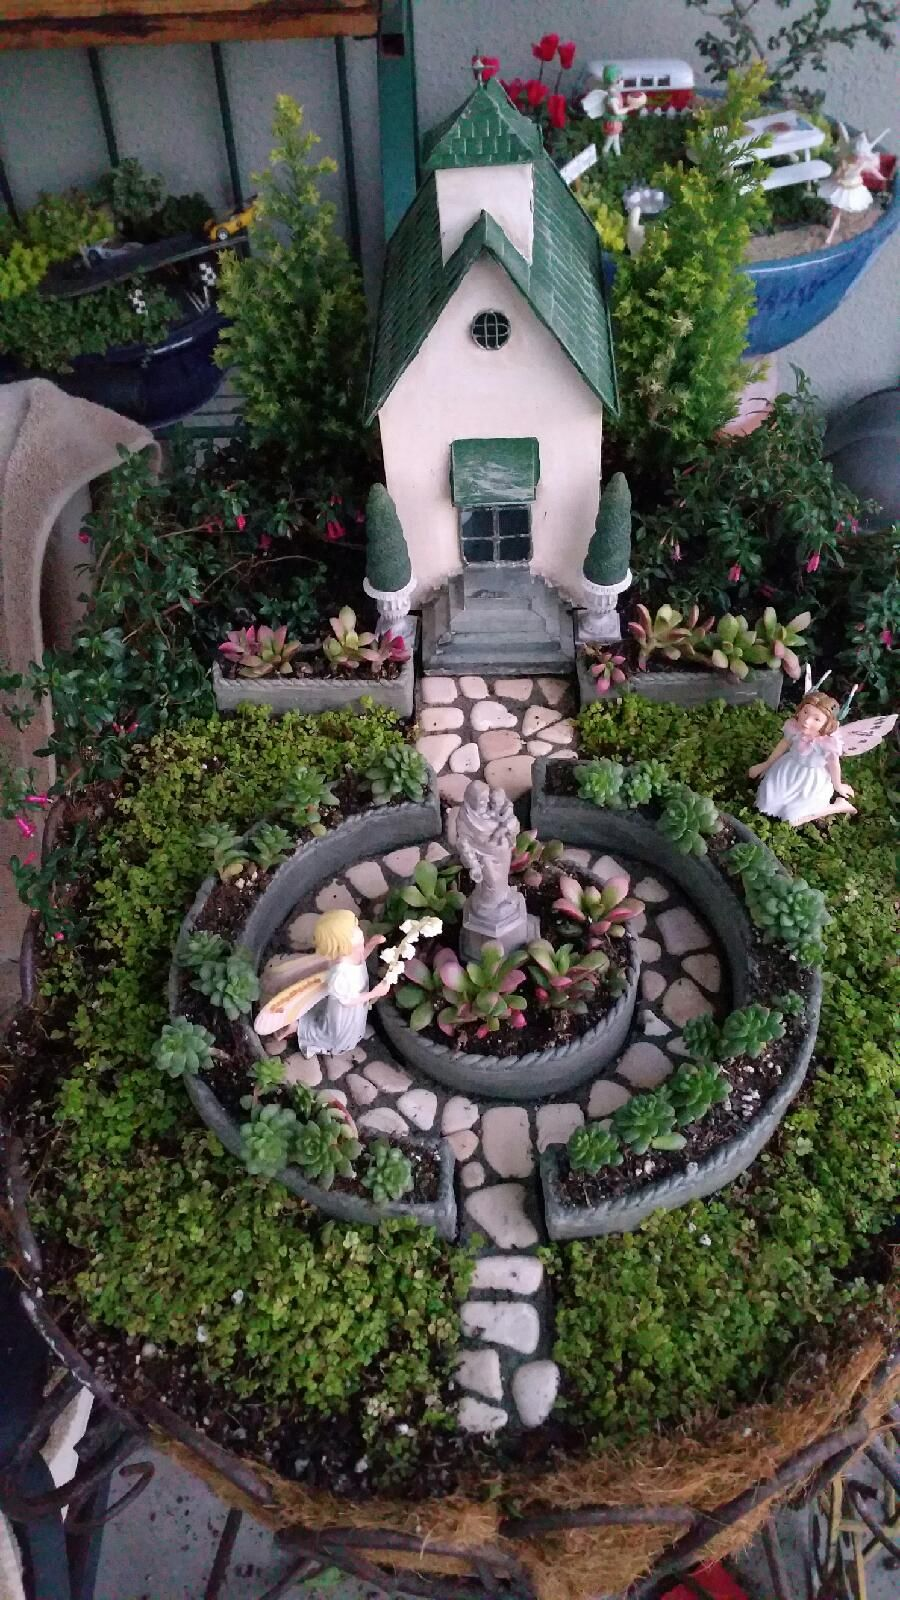 Miniature Fairy Garden In Awe Two Girl Fairies Who Are